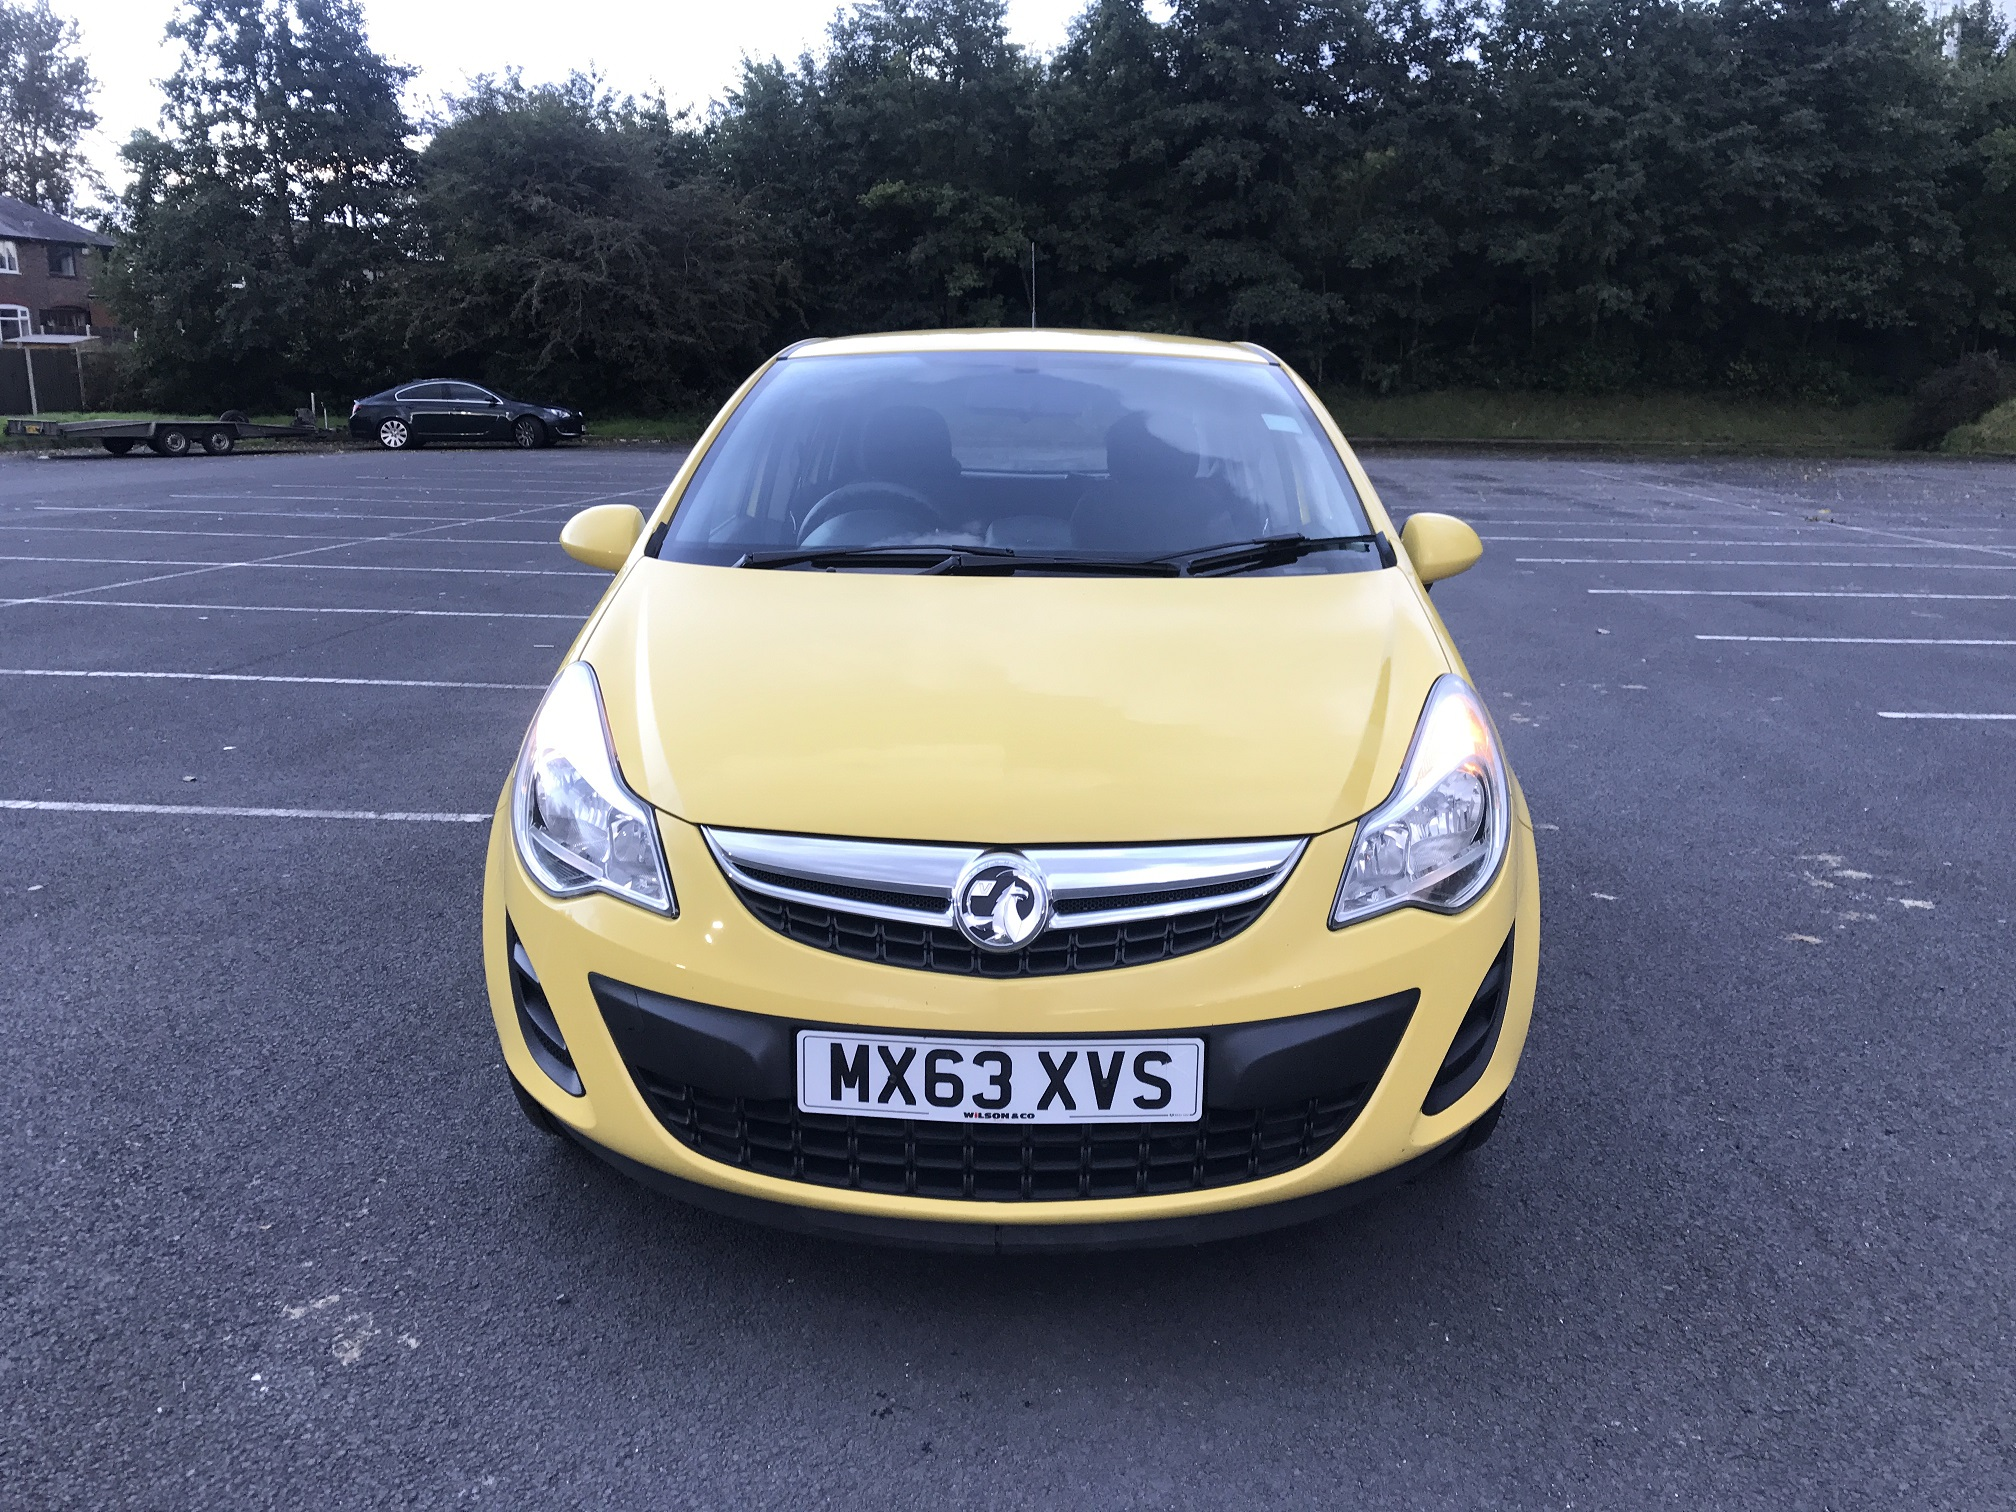 Driving Instructor Car For Sale Essex